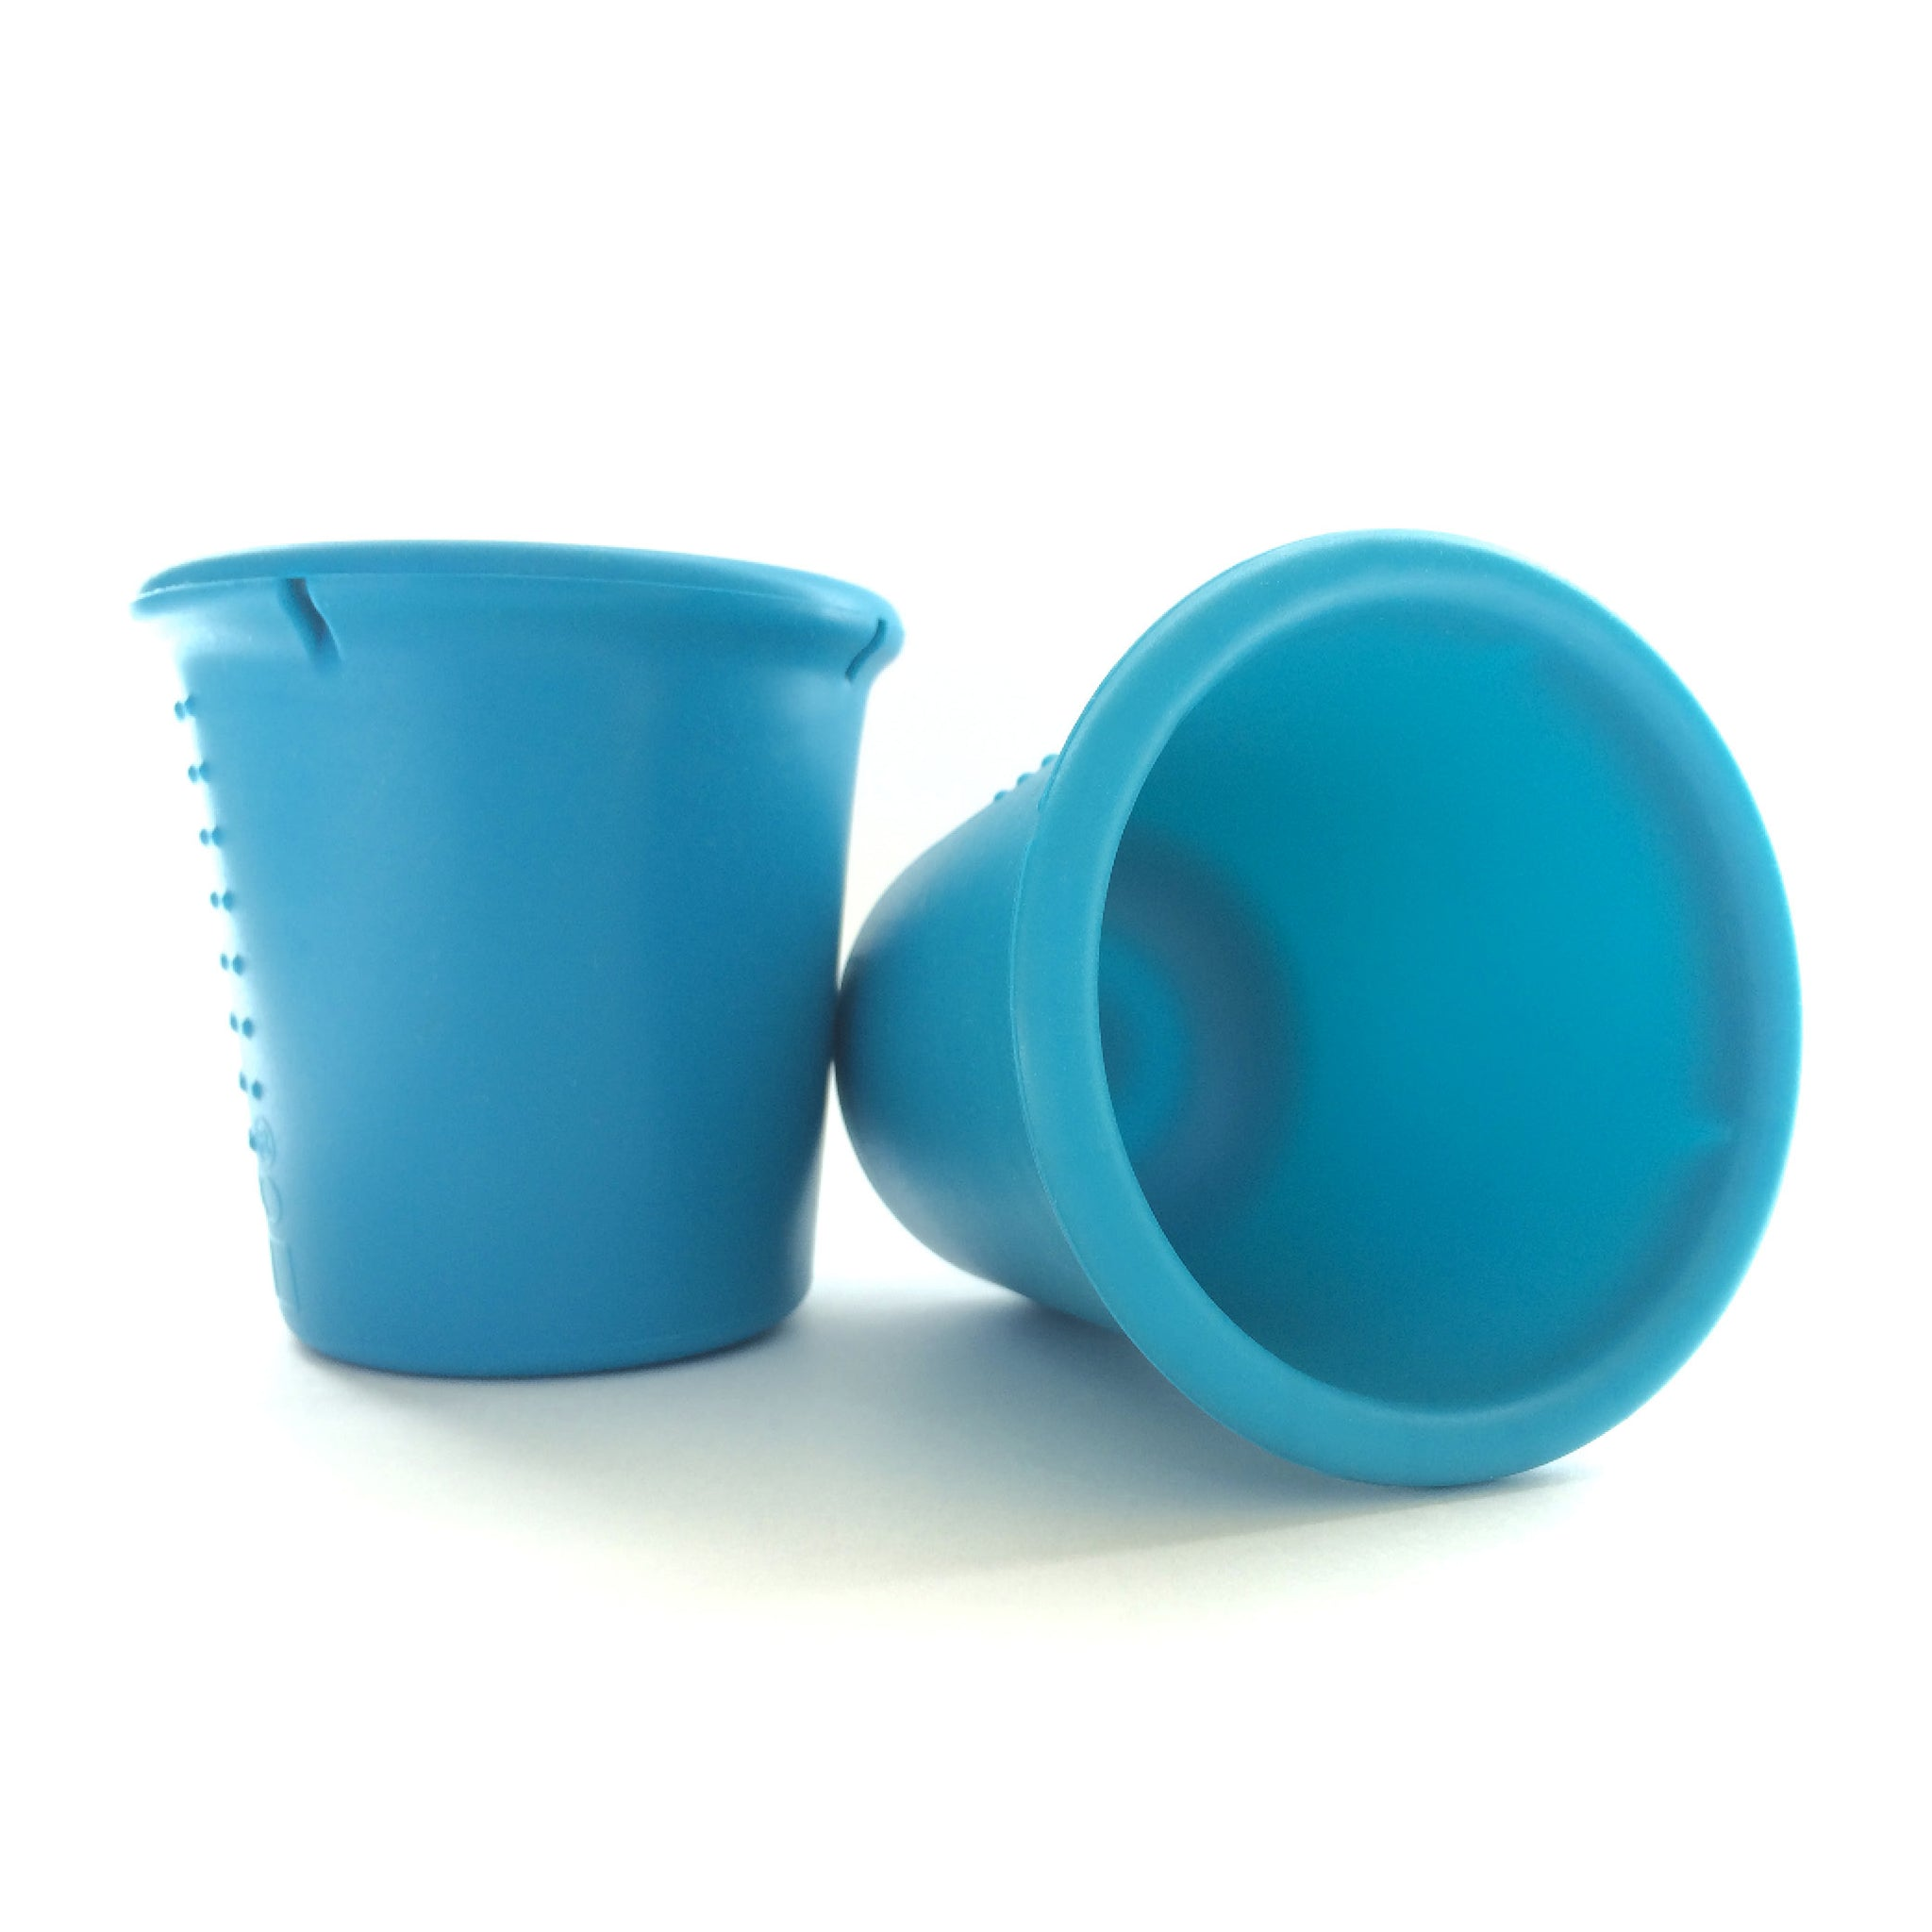 Siliskin Cups 2 pack set (Teal/Storm)